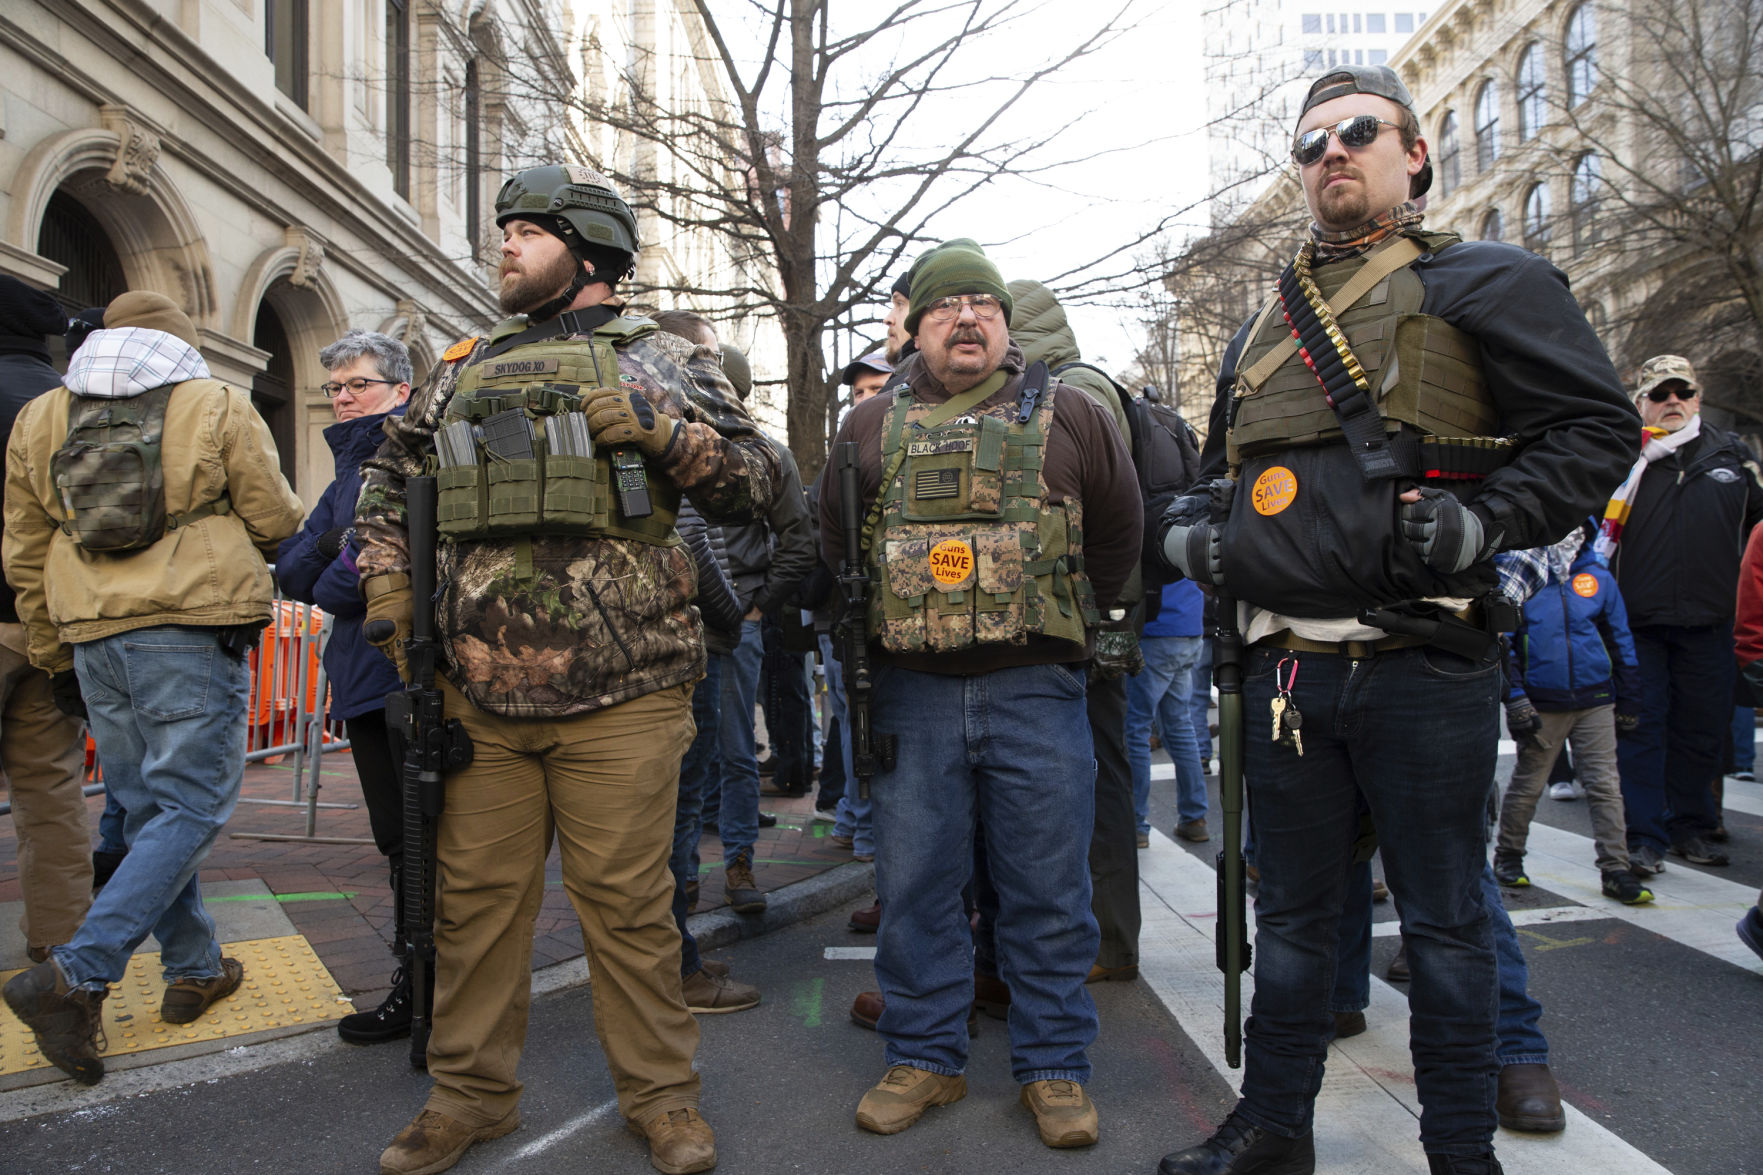 Ed Pratt: A black crowd armed to the teeth would get a different reaction, anywhere